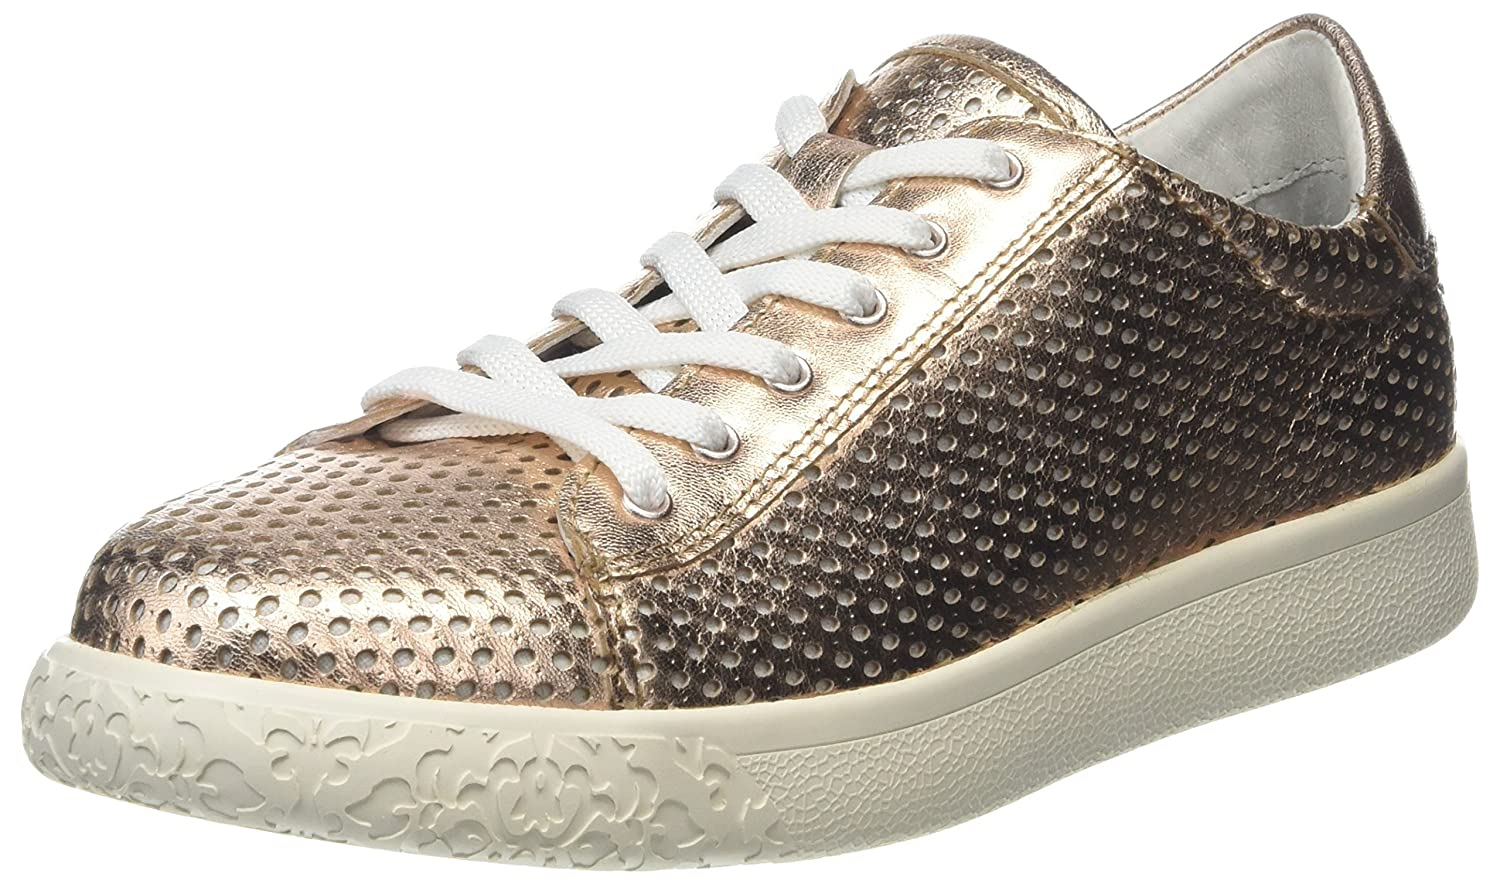 Womens Sandy 5 Low-Top Sneakers Stonefly Cheap Ebay Footlocker For Sale Limited Edition Cheap Online vTGPhim